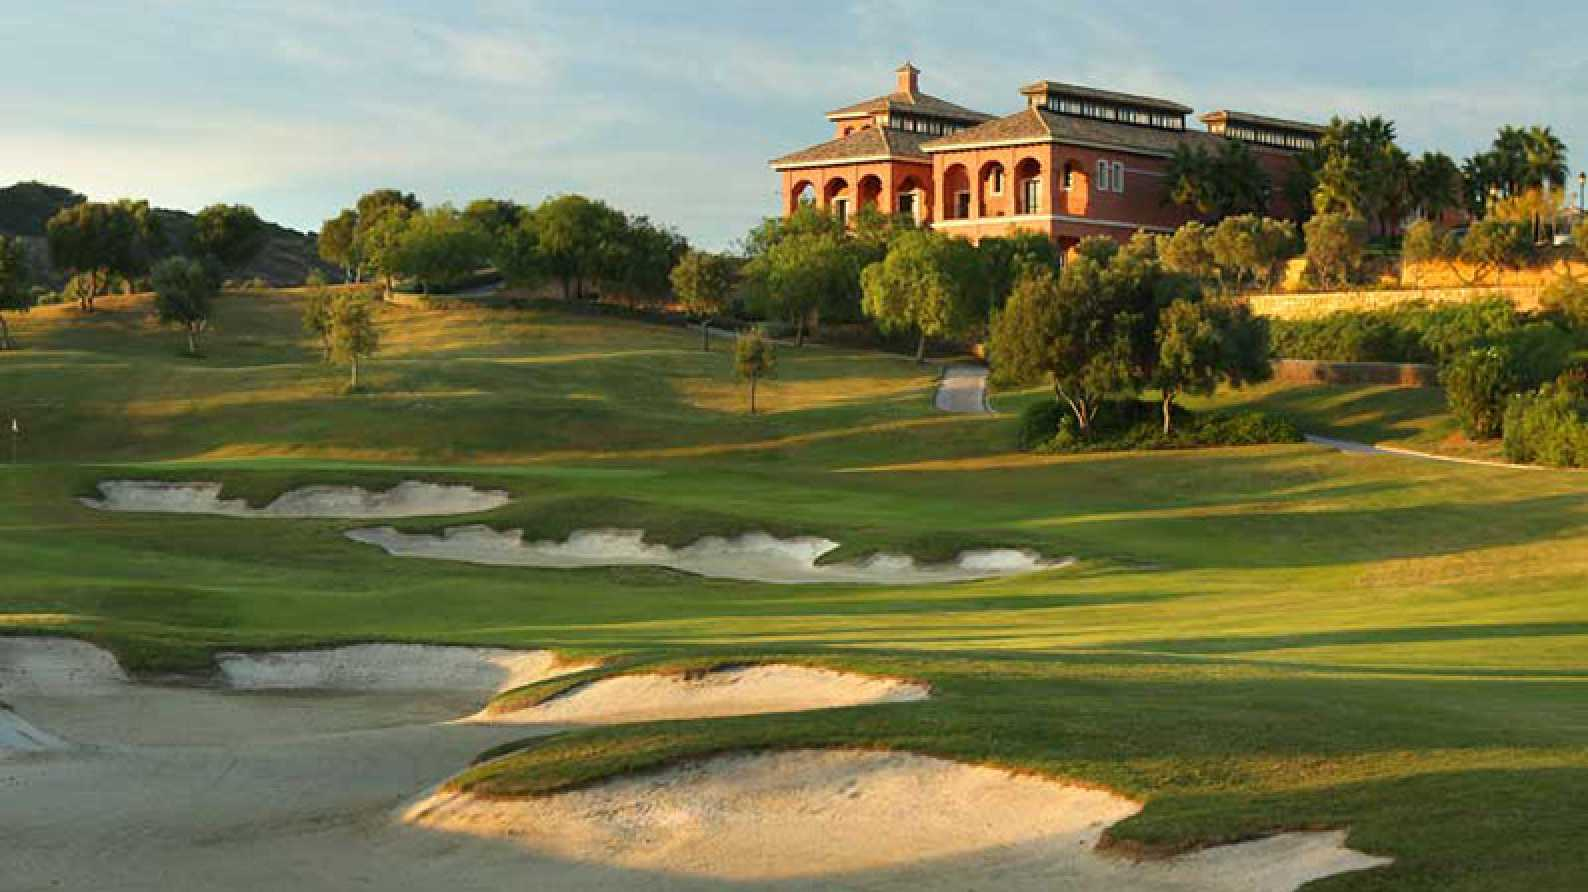 Club de Golf La Reserva Sotogrande